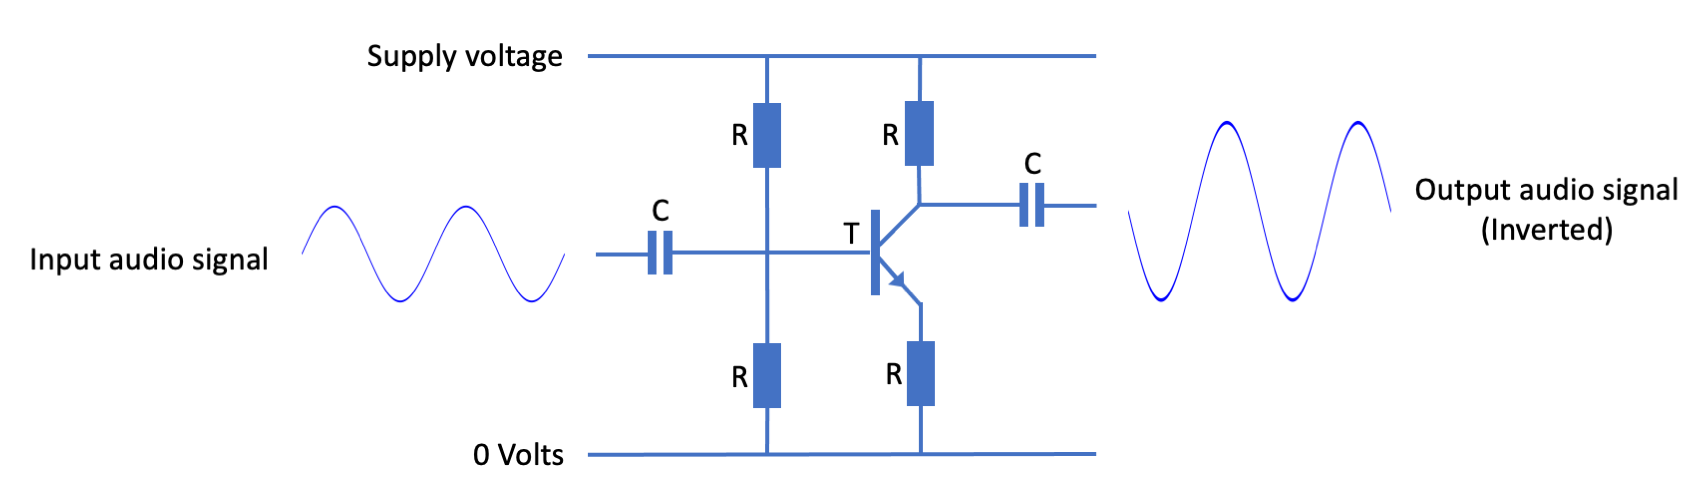 Figure 14.10. Single-stage transistor amplifier circuit, giving an inverted signal output (C = capacitor; R = resistor; T = transistor)